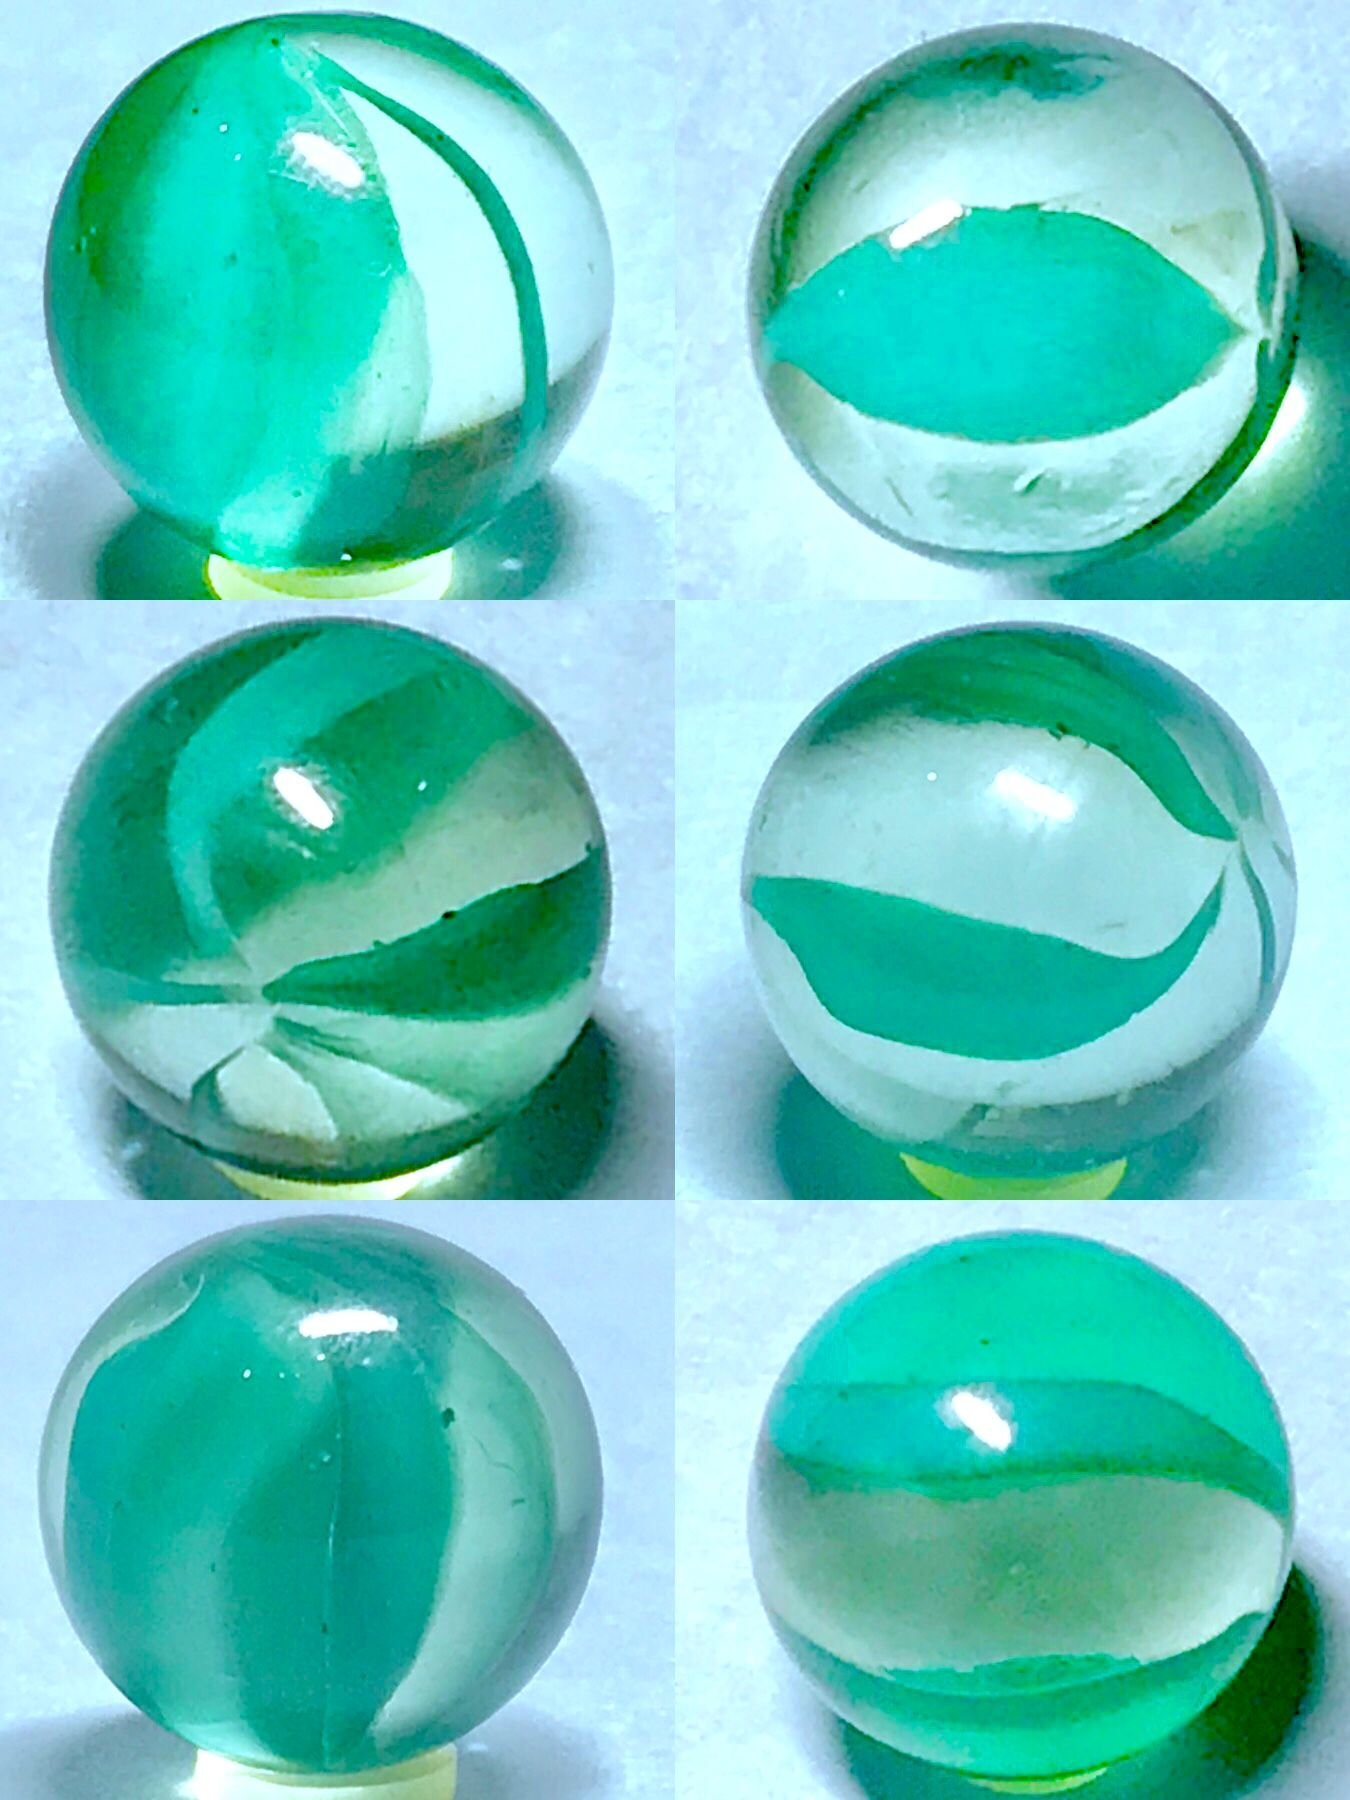 Pin by Sara Switz on marbles Glass ball, Paperweights